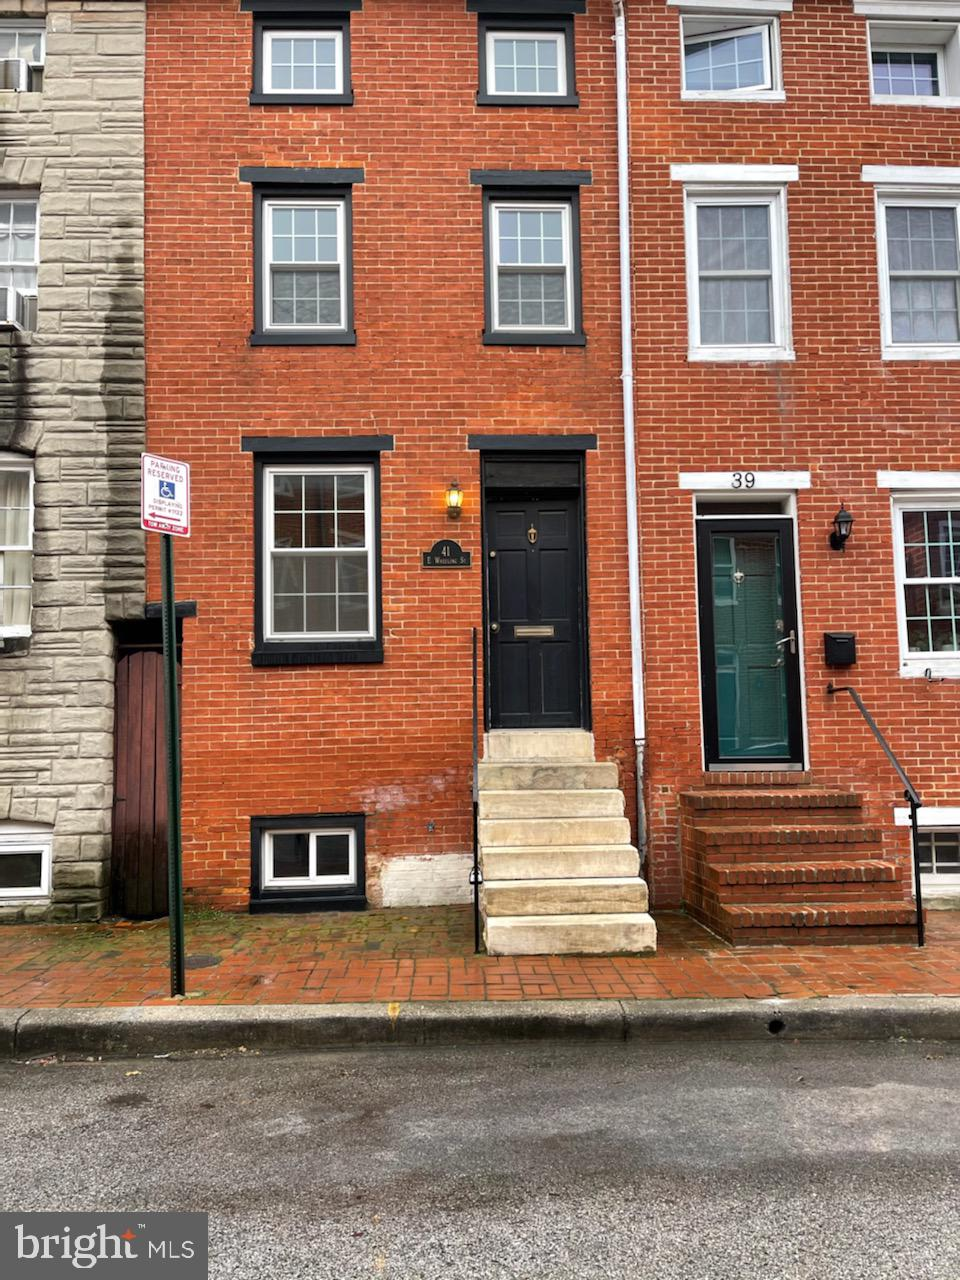 Incredible location in Federal Hill!  Live and walk to everything this wonderful Neighborhood has to offer!  Live steps from the Cross Street Market shopping district, both Raven's & Orioles stadiums, a short walk to the Inner Harbor and Federal Hill Park.  This is a 3 story home with a privately fenced rear yard & rooftop deck offering amazing City views.  Enjoy an open floor plan, wood floors, main level fireplace, 2nd floor laundry, newly installed full bathroom and a full basement offering plenty of storage.  Incredible value at this price for such an incredible location. Make your appointment today!